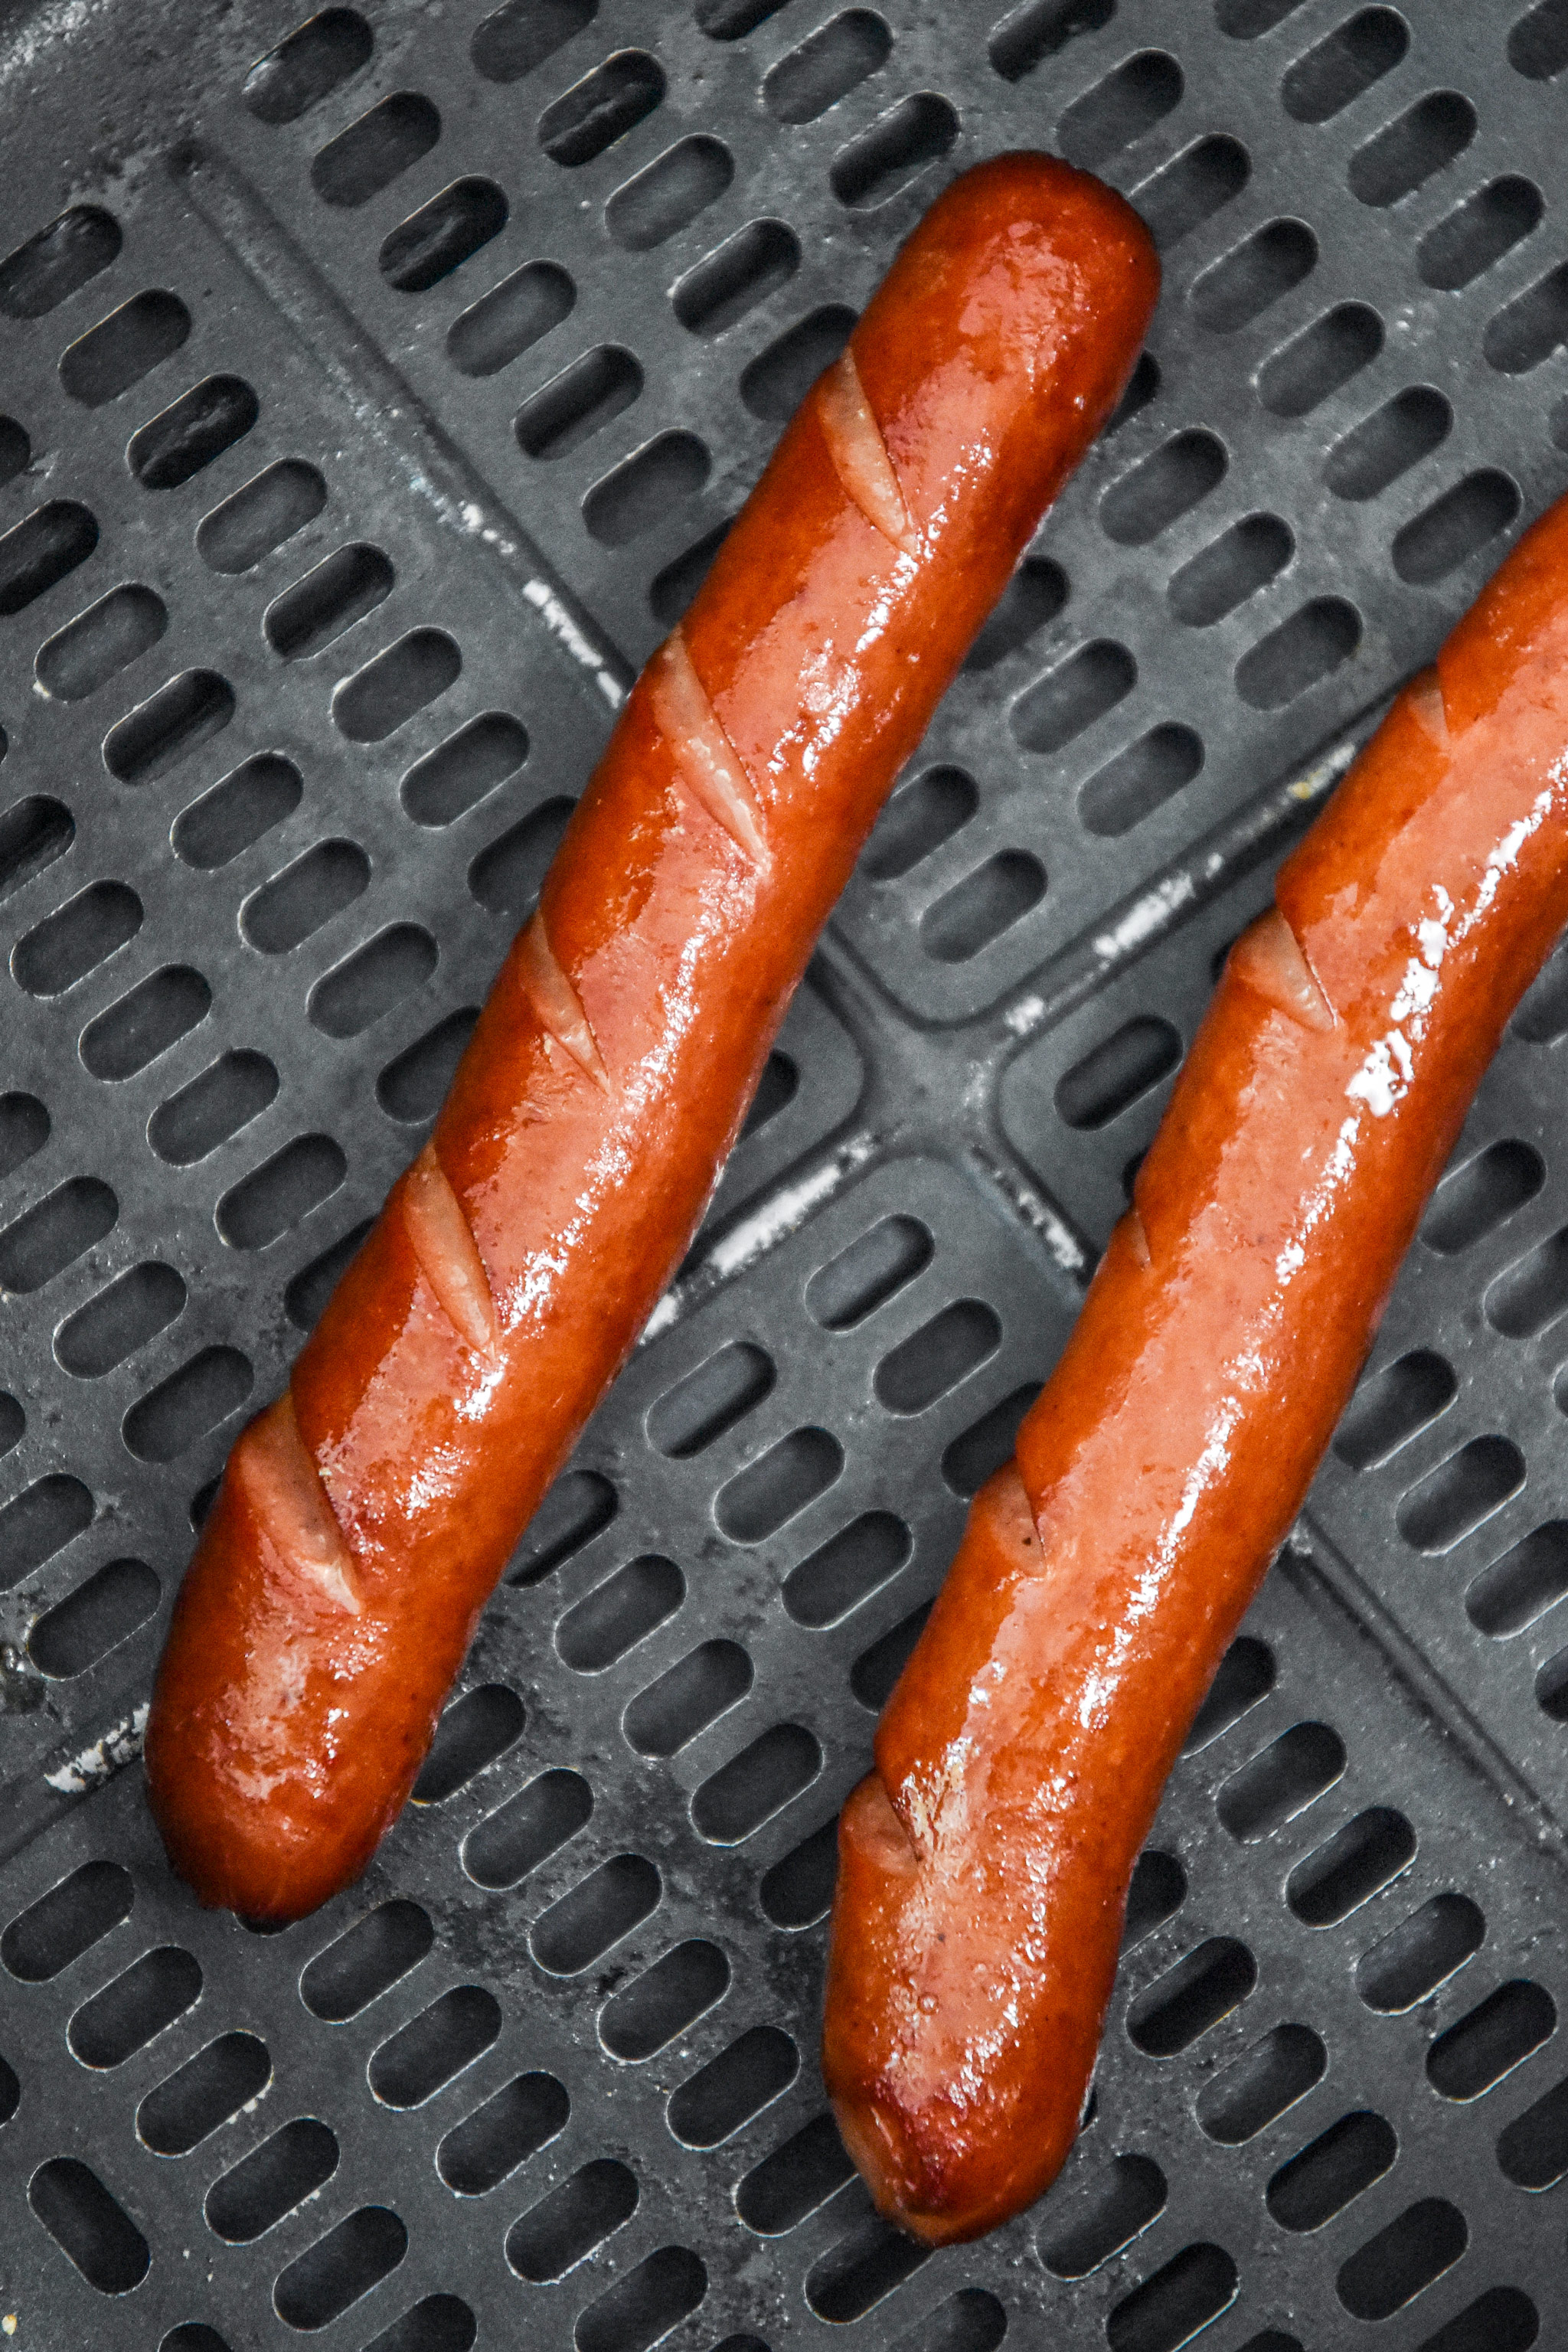 cooked hot dogs in the air fryer basket.